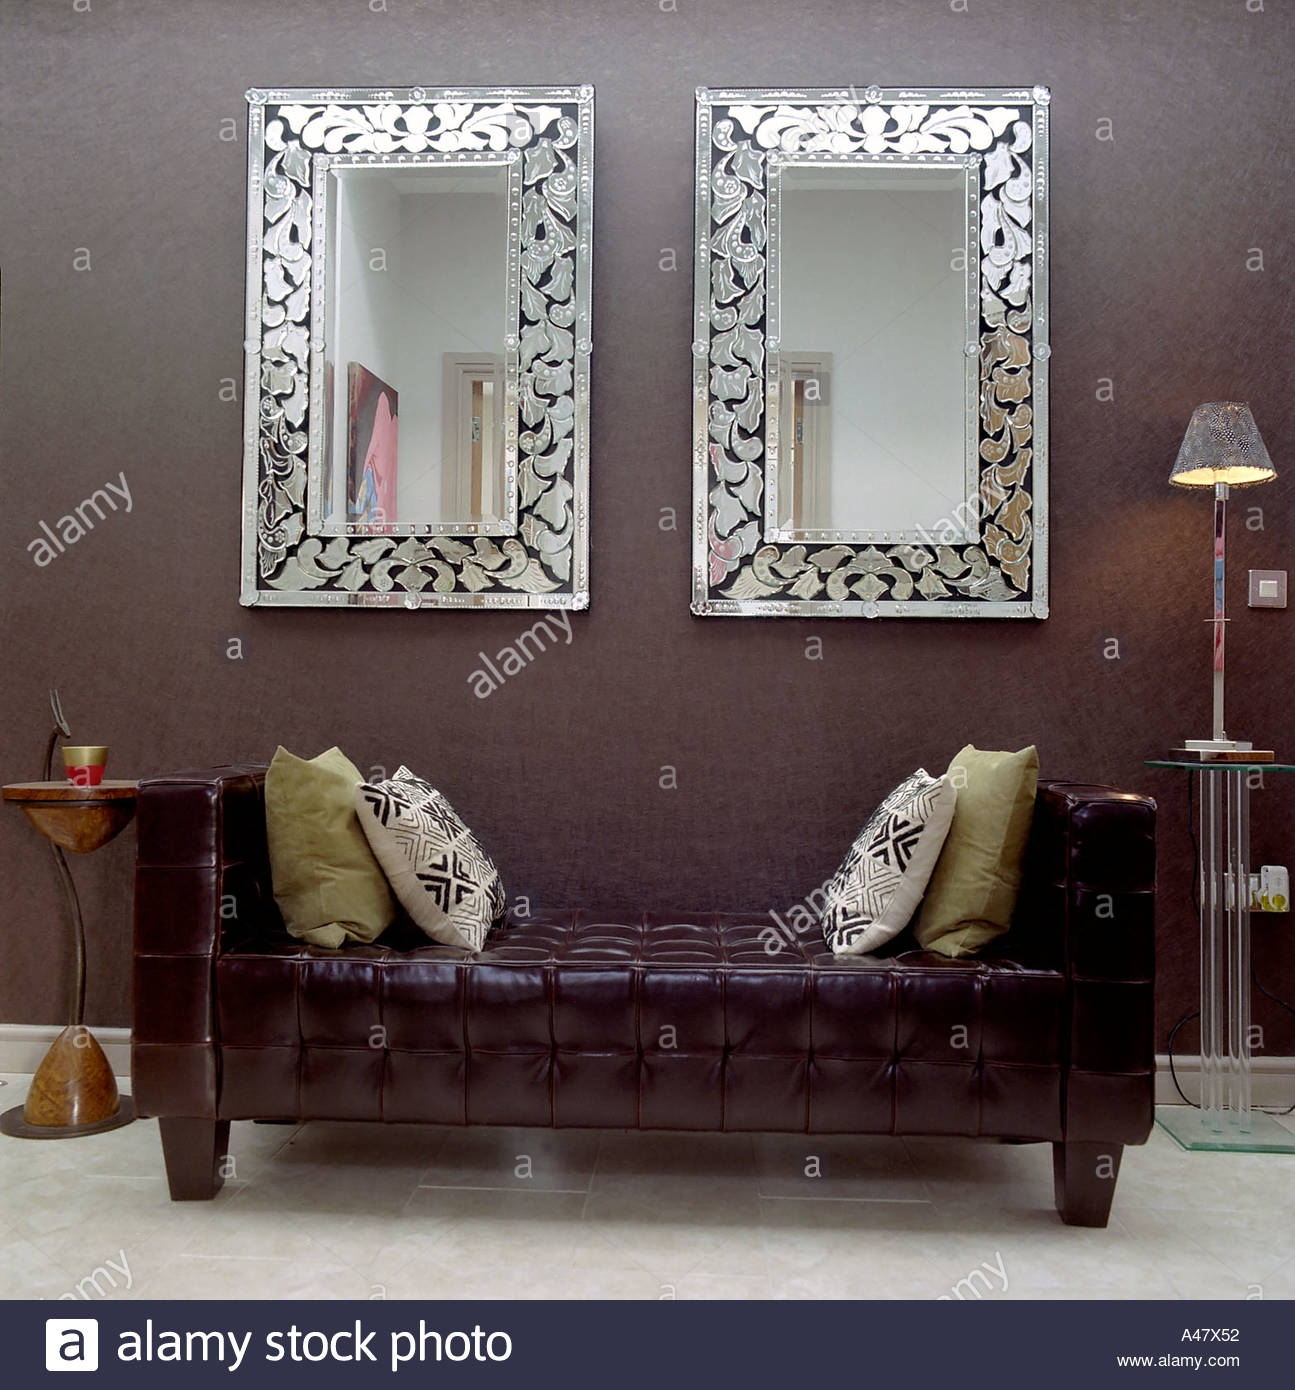 Birmingham Penthouse Leather Day Bed And Twin Mirrors Stock Photo Pertaining To Mirrors In Birmingham (Image 6 of 15)